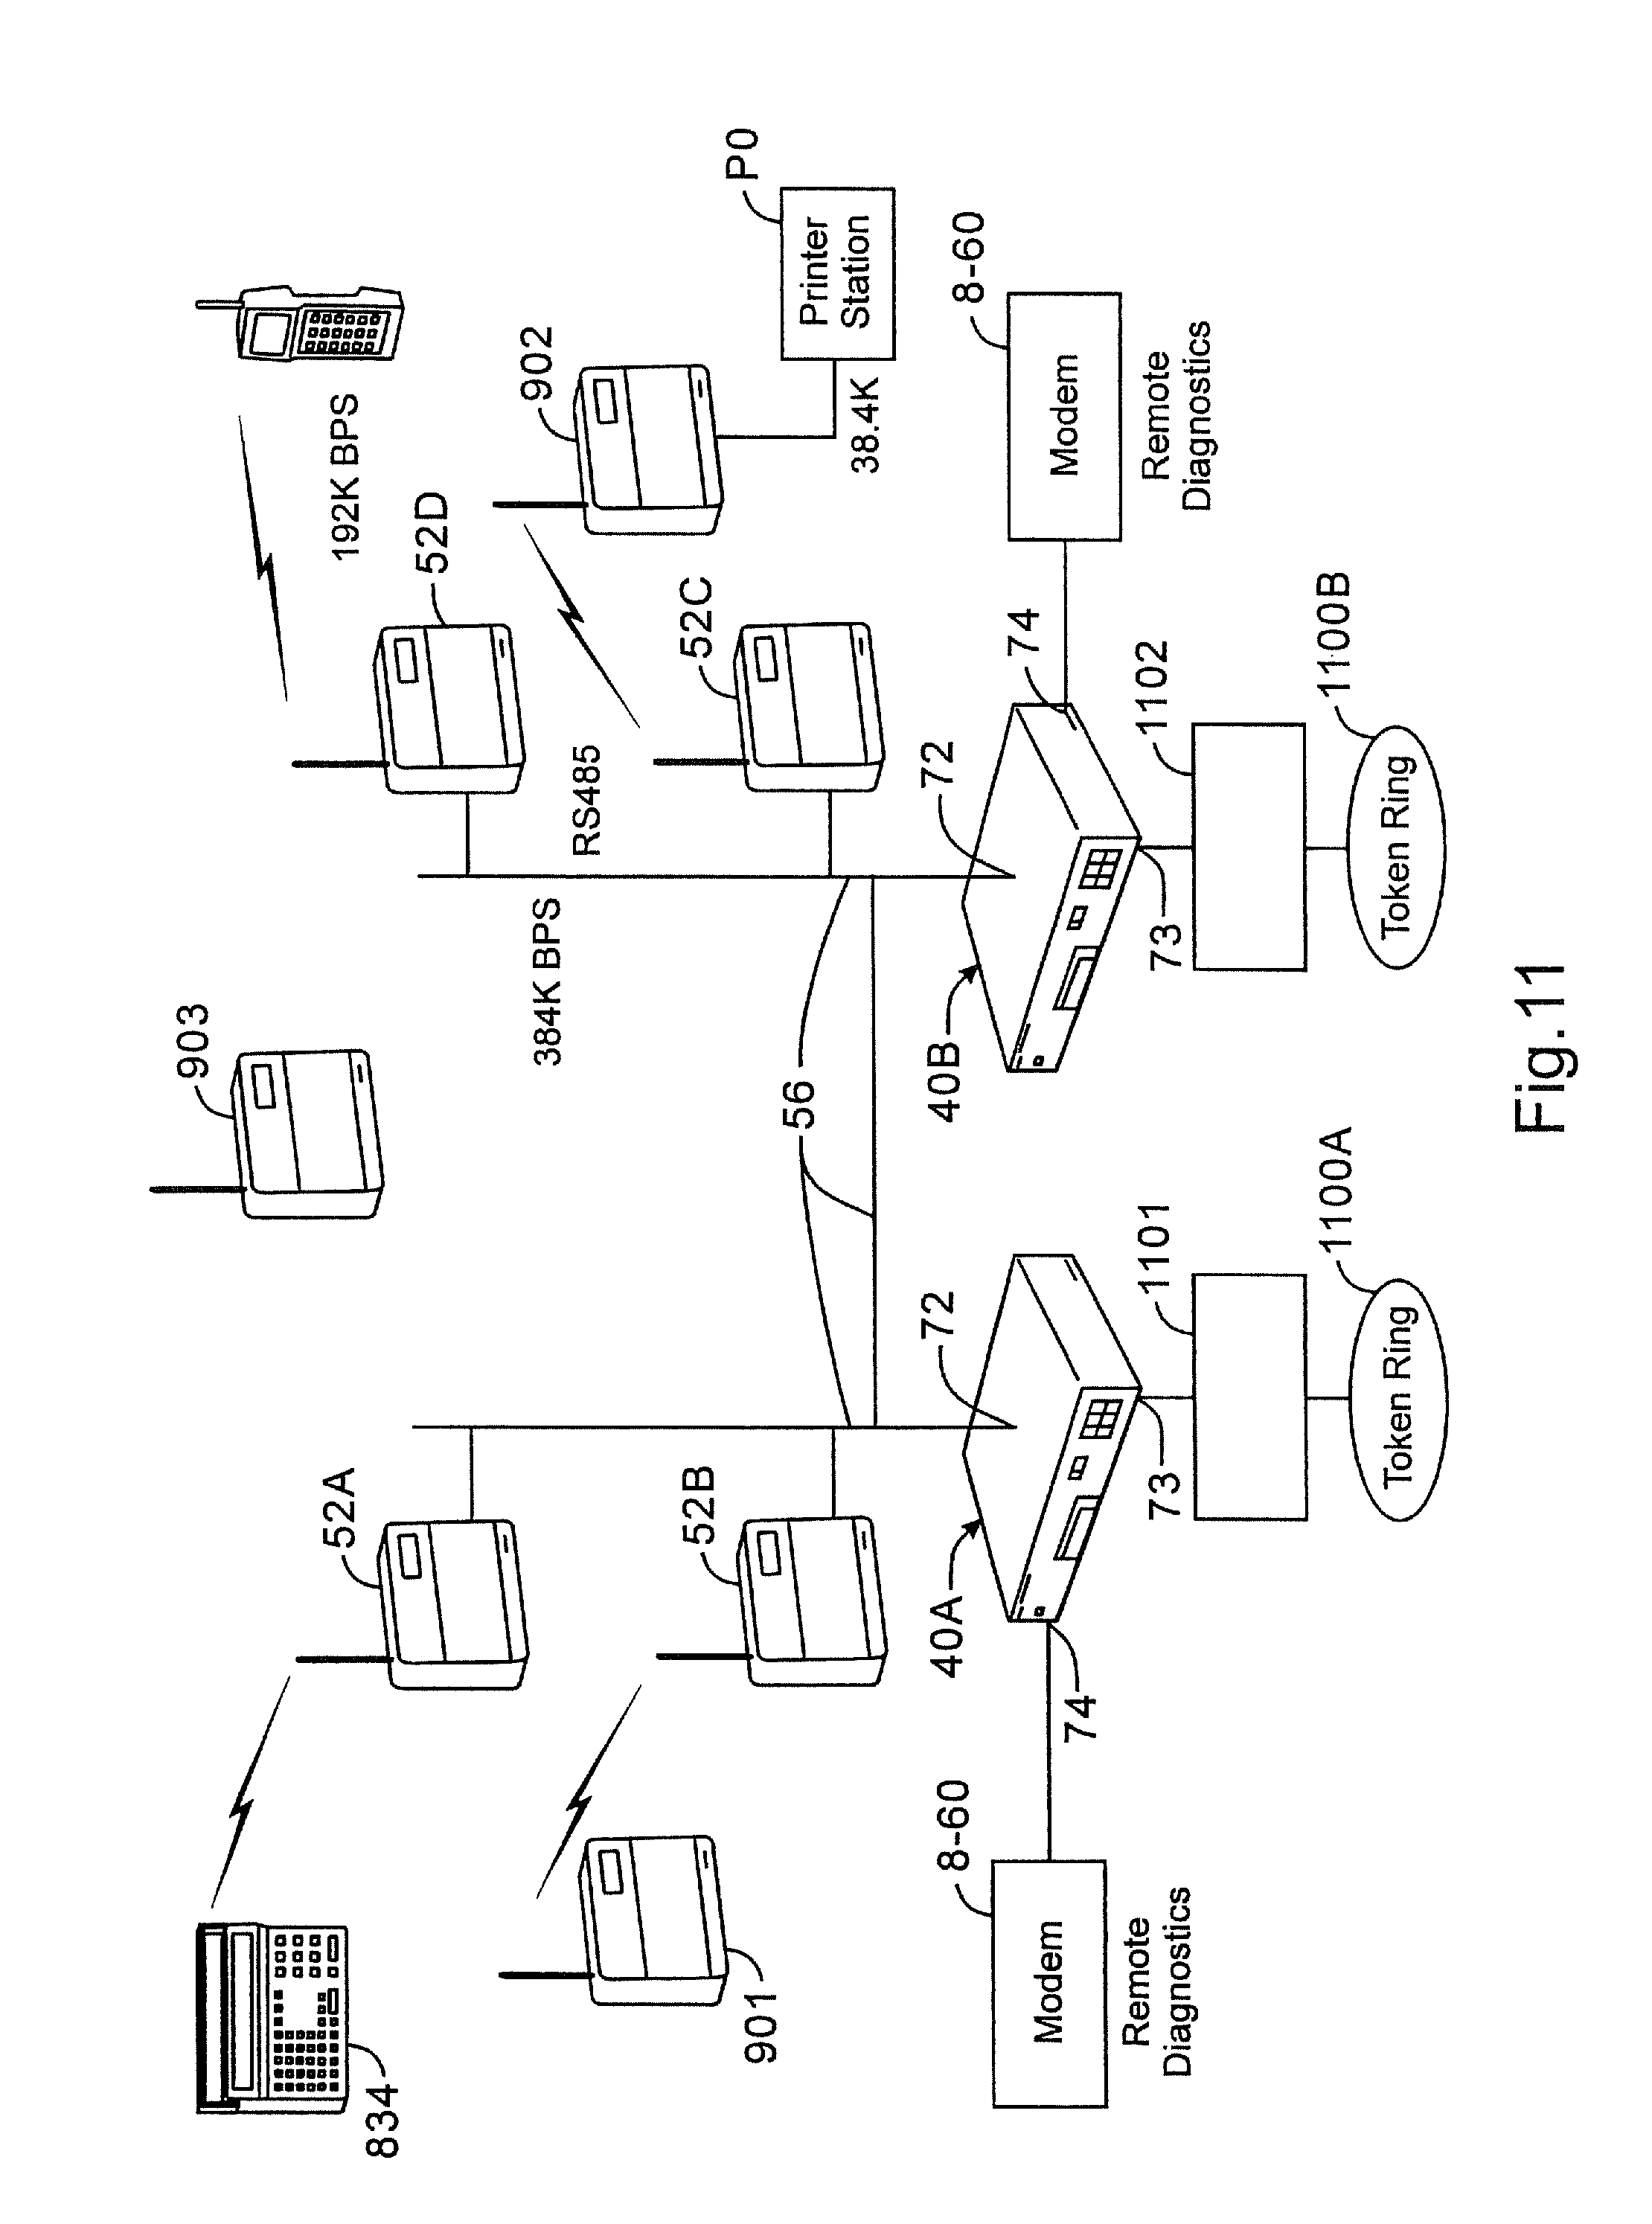 Patent Us 7873343 B2 Rs232 Transceiver Circuit Collection